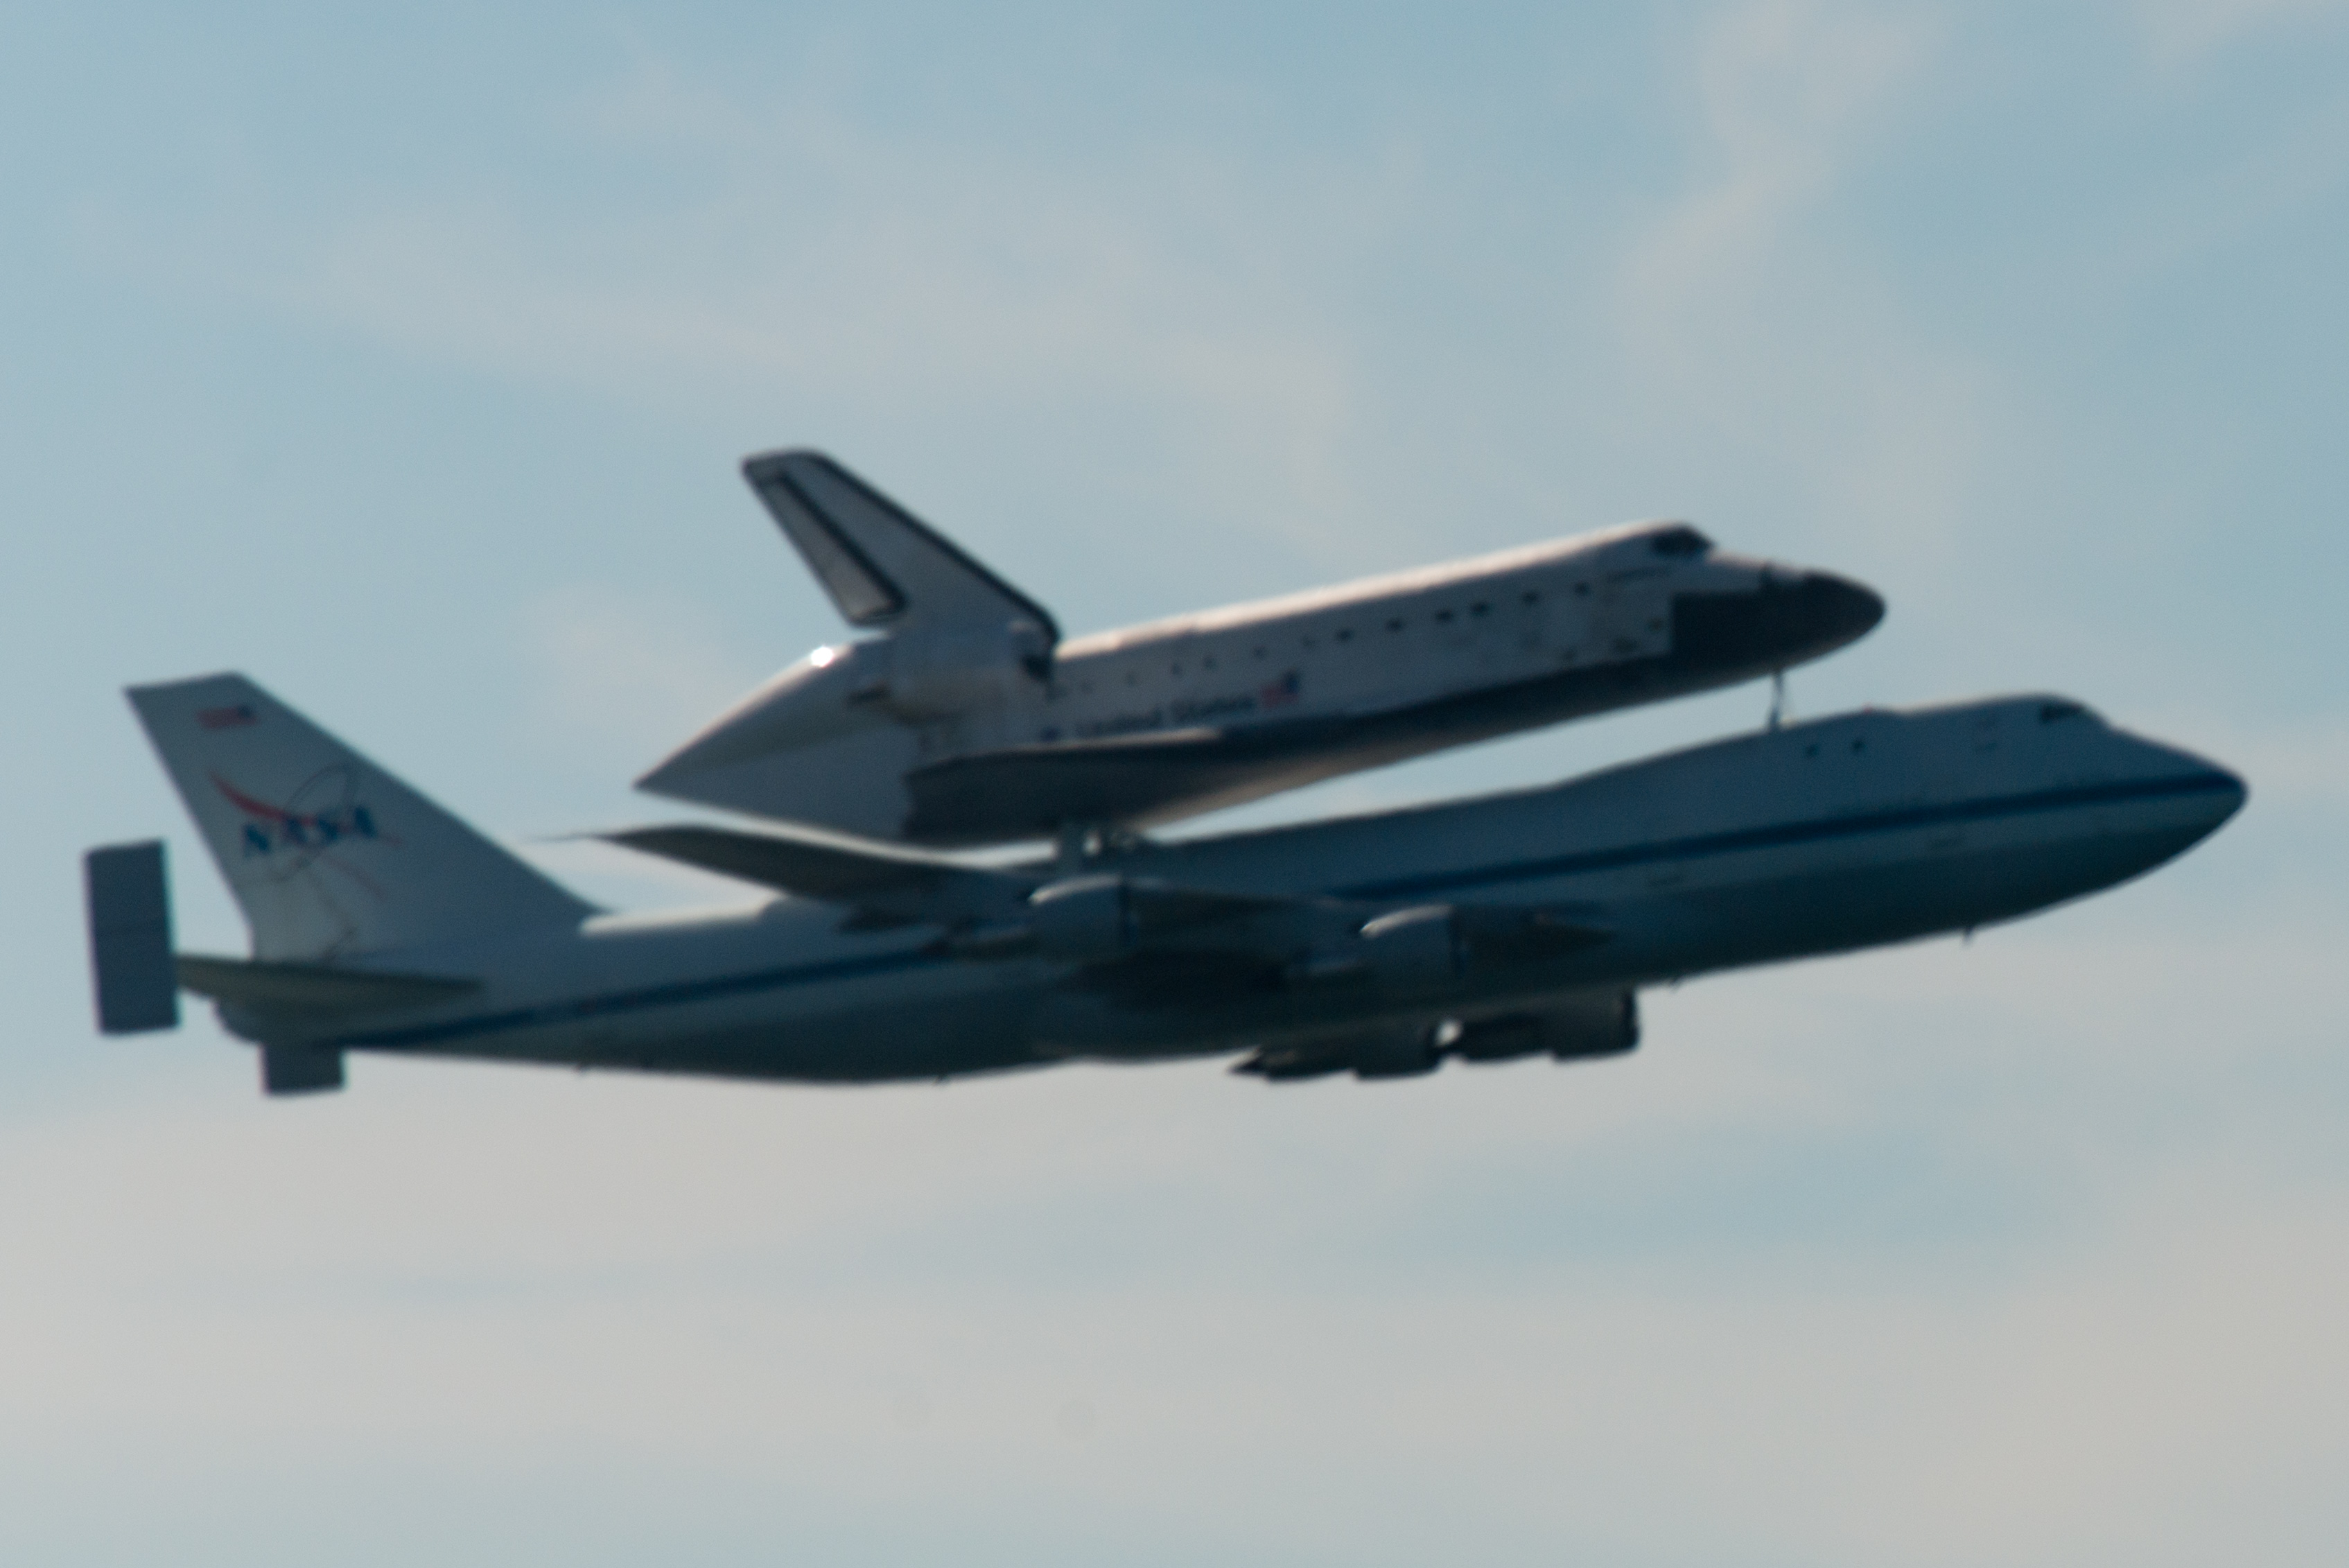 Space Shuttle Airplane - Pics about space